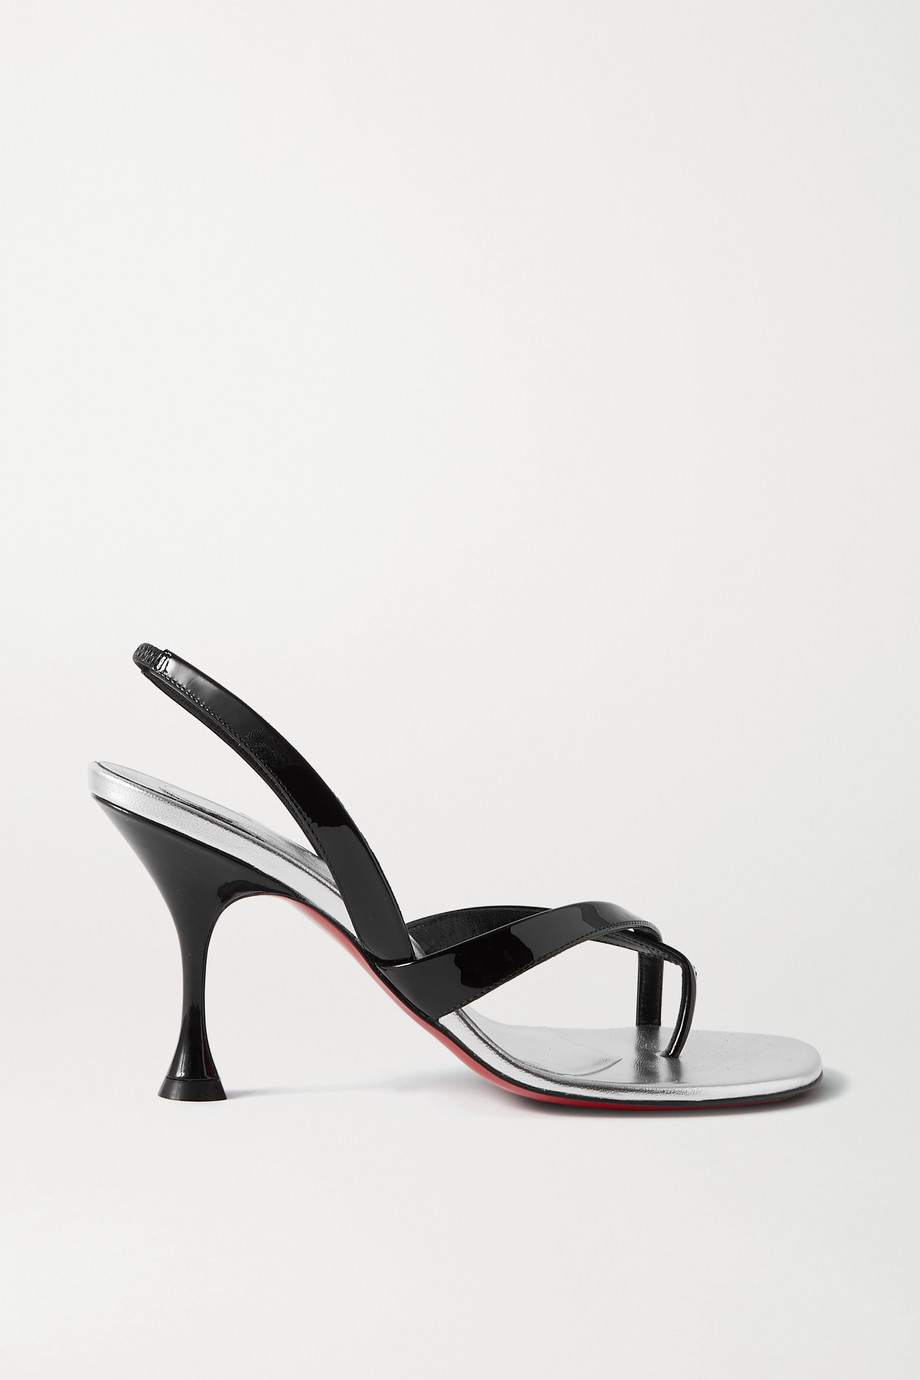 Christian Louboutin Taralita 85 patent-leather slingback sandals